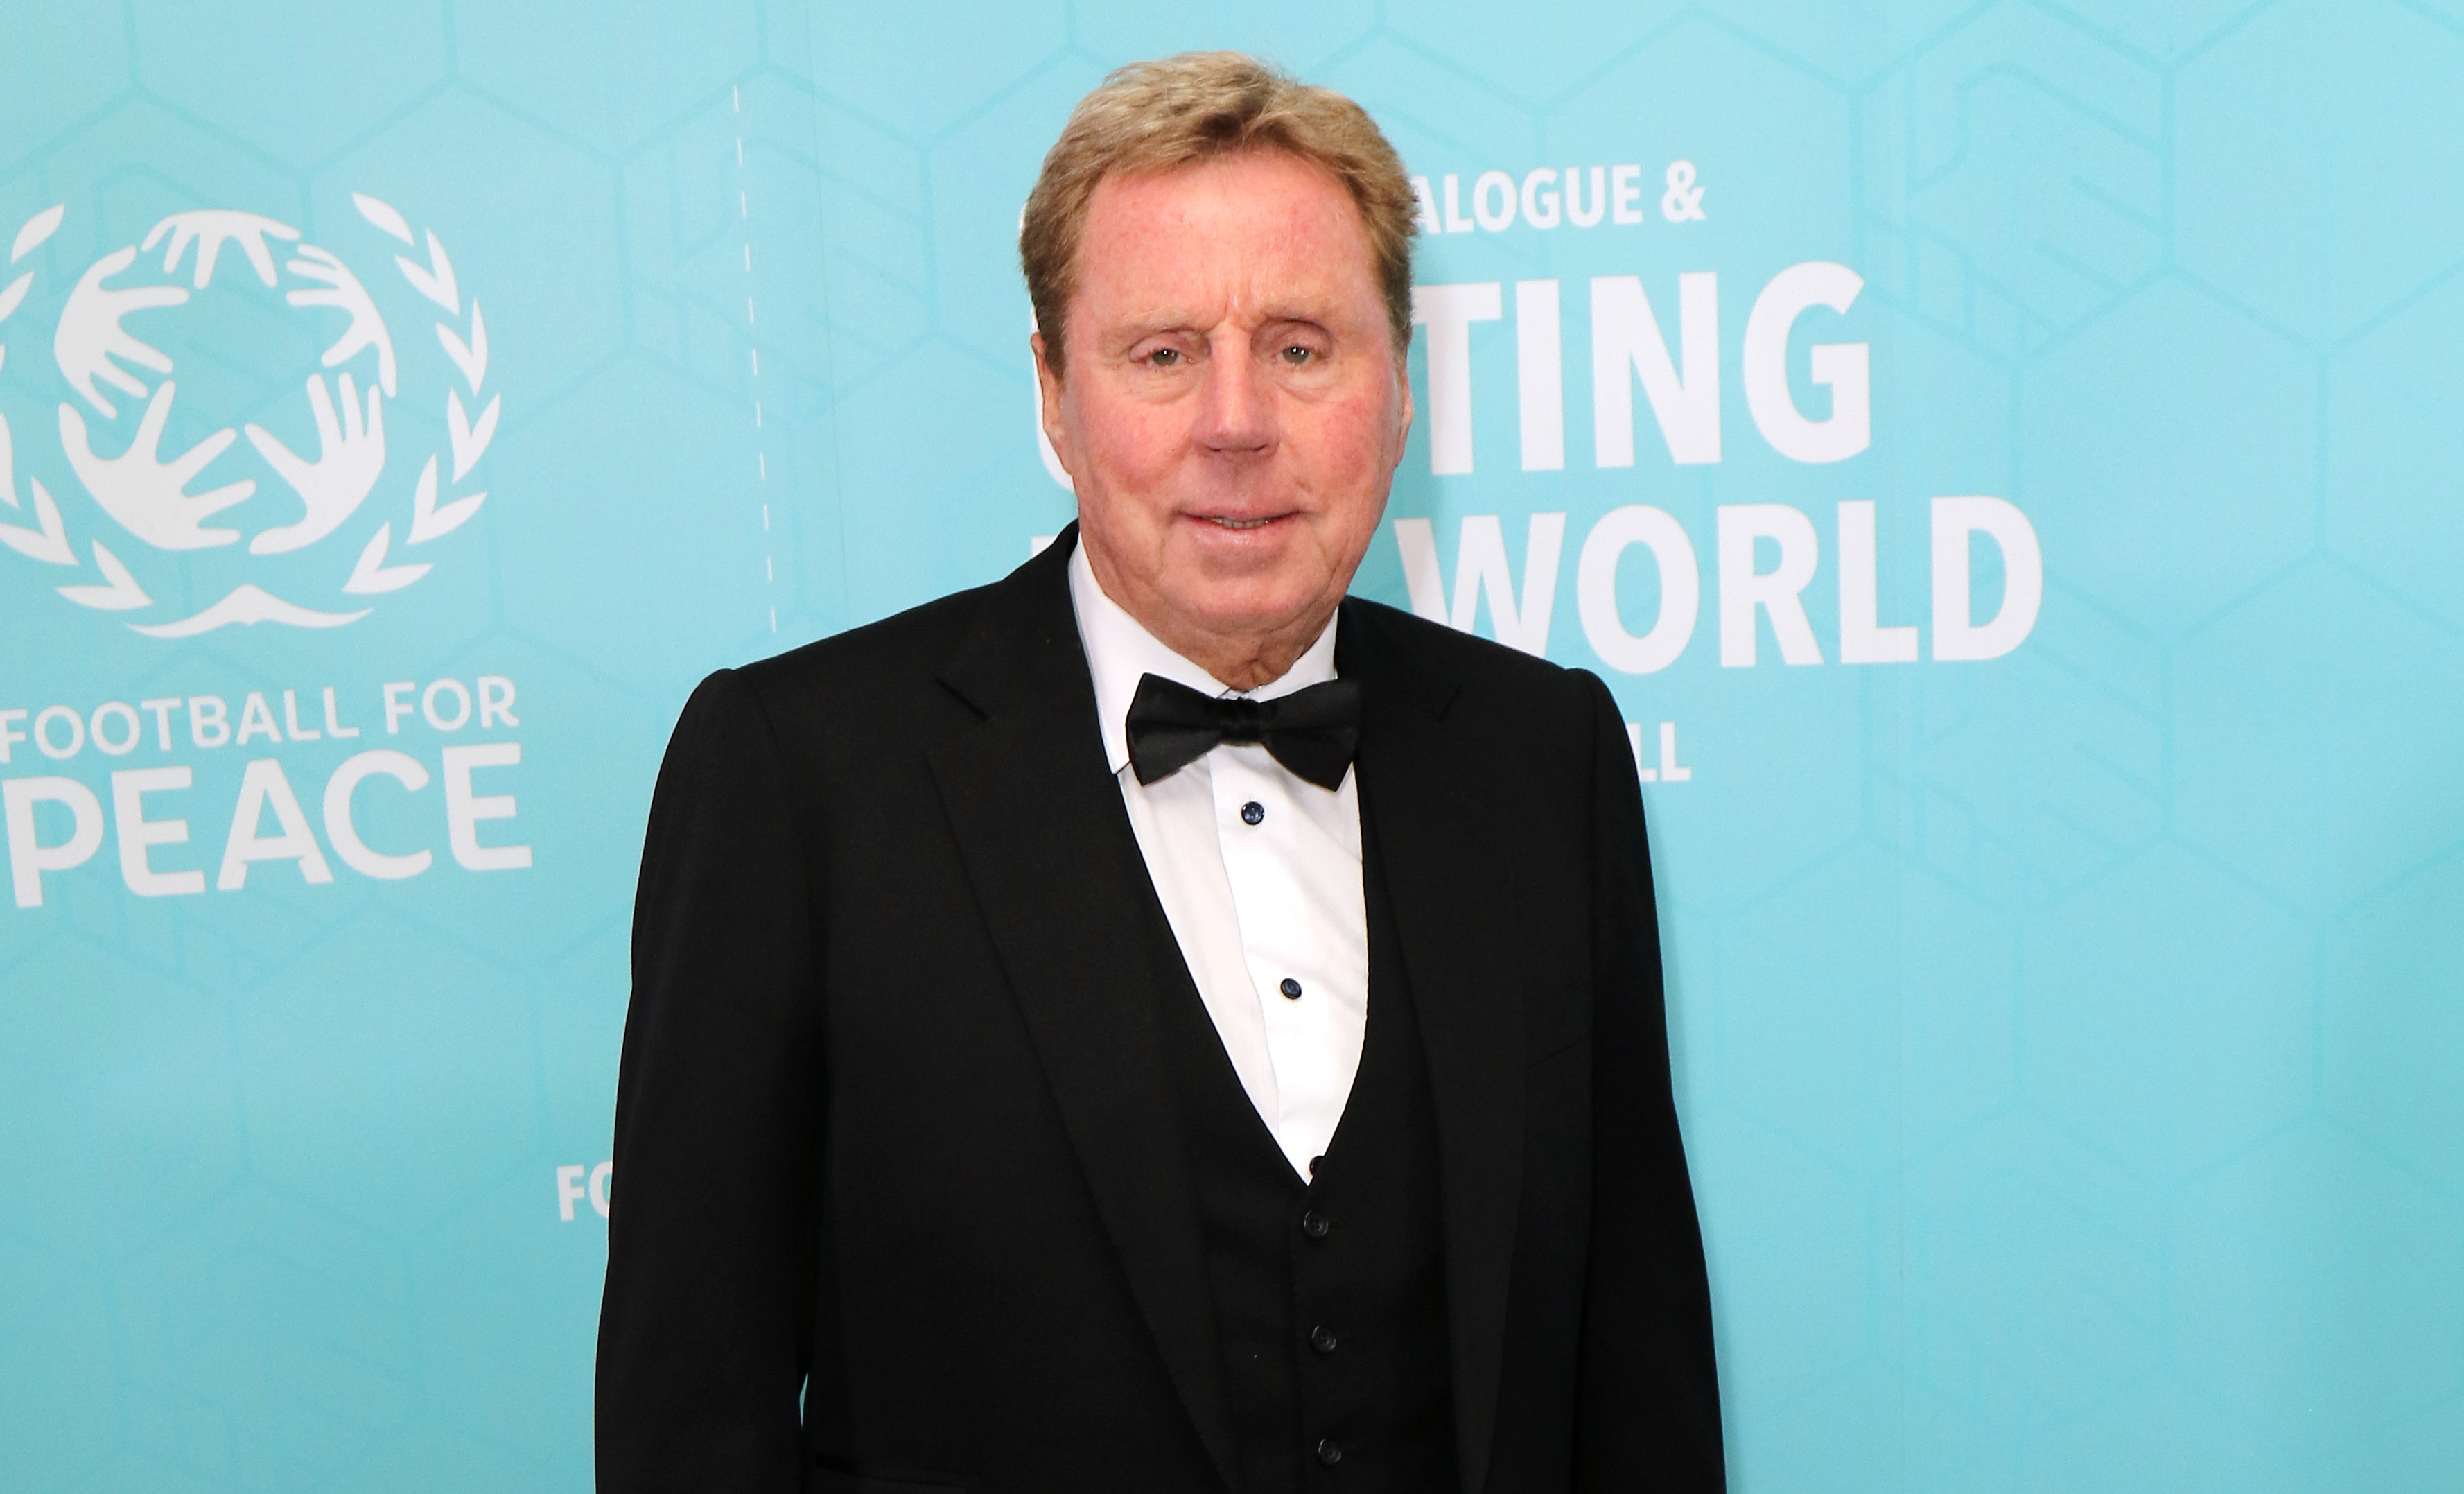 Harry Redknapp delights fans by sharing family holiday photo